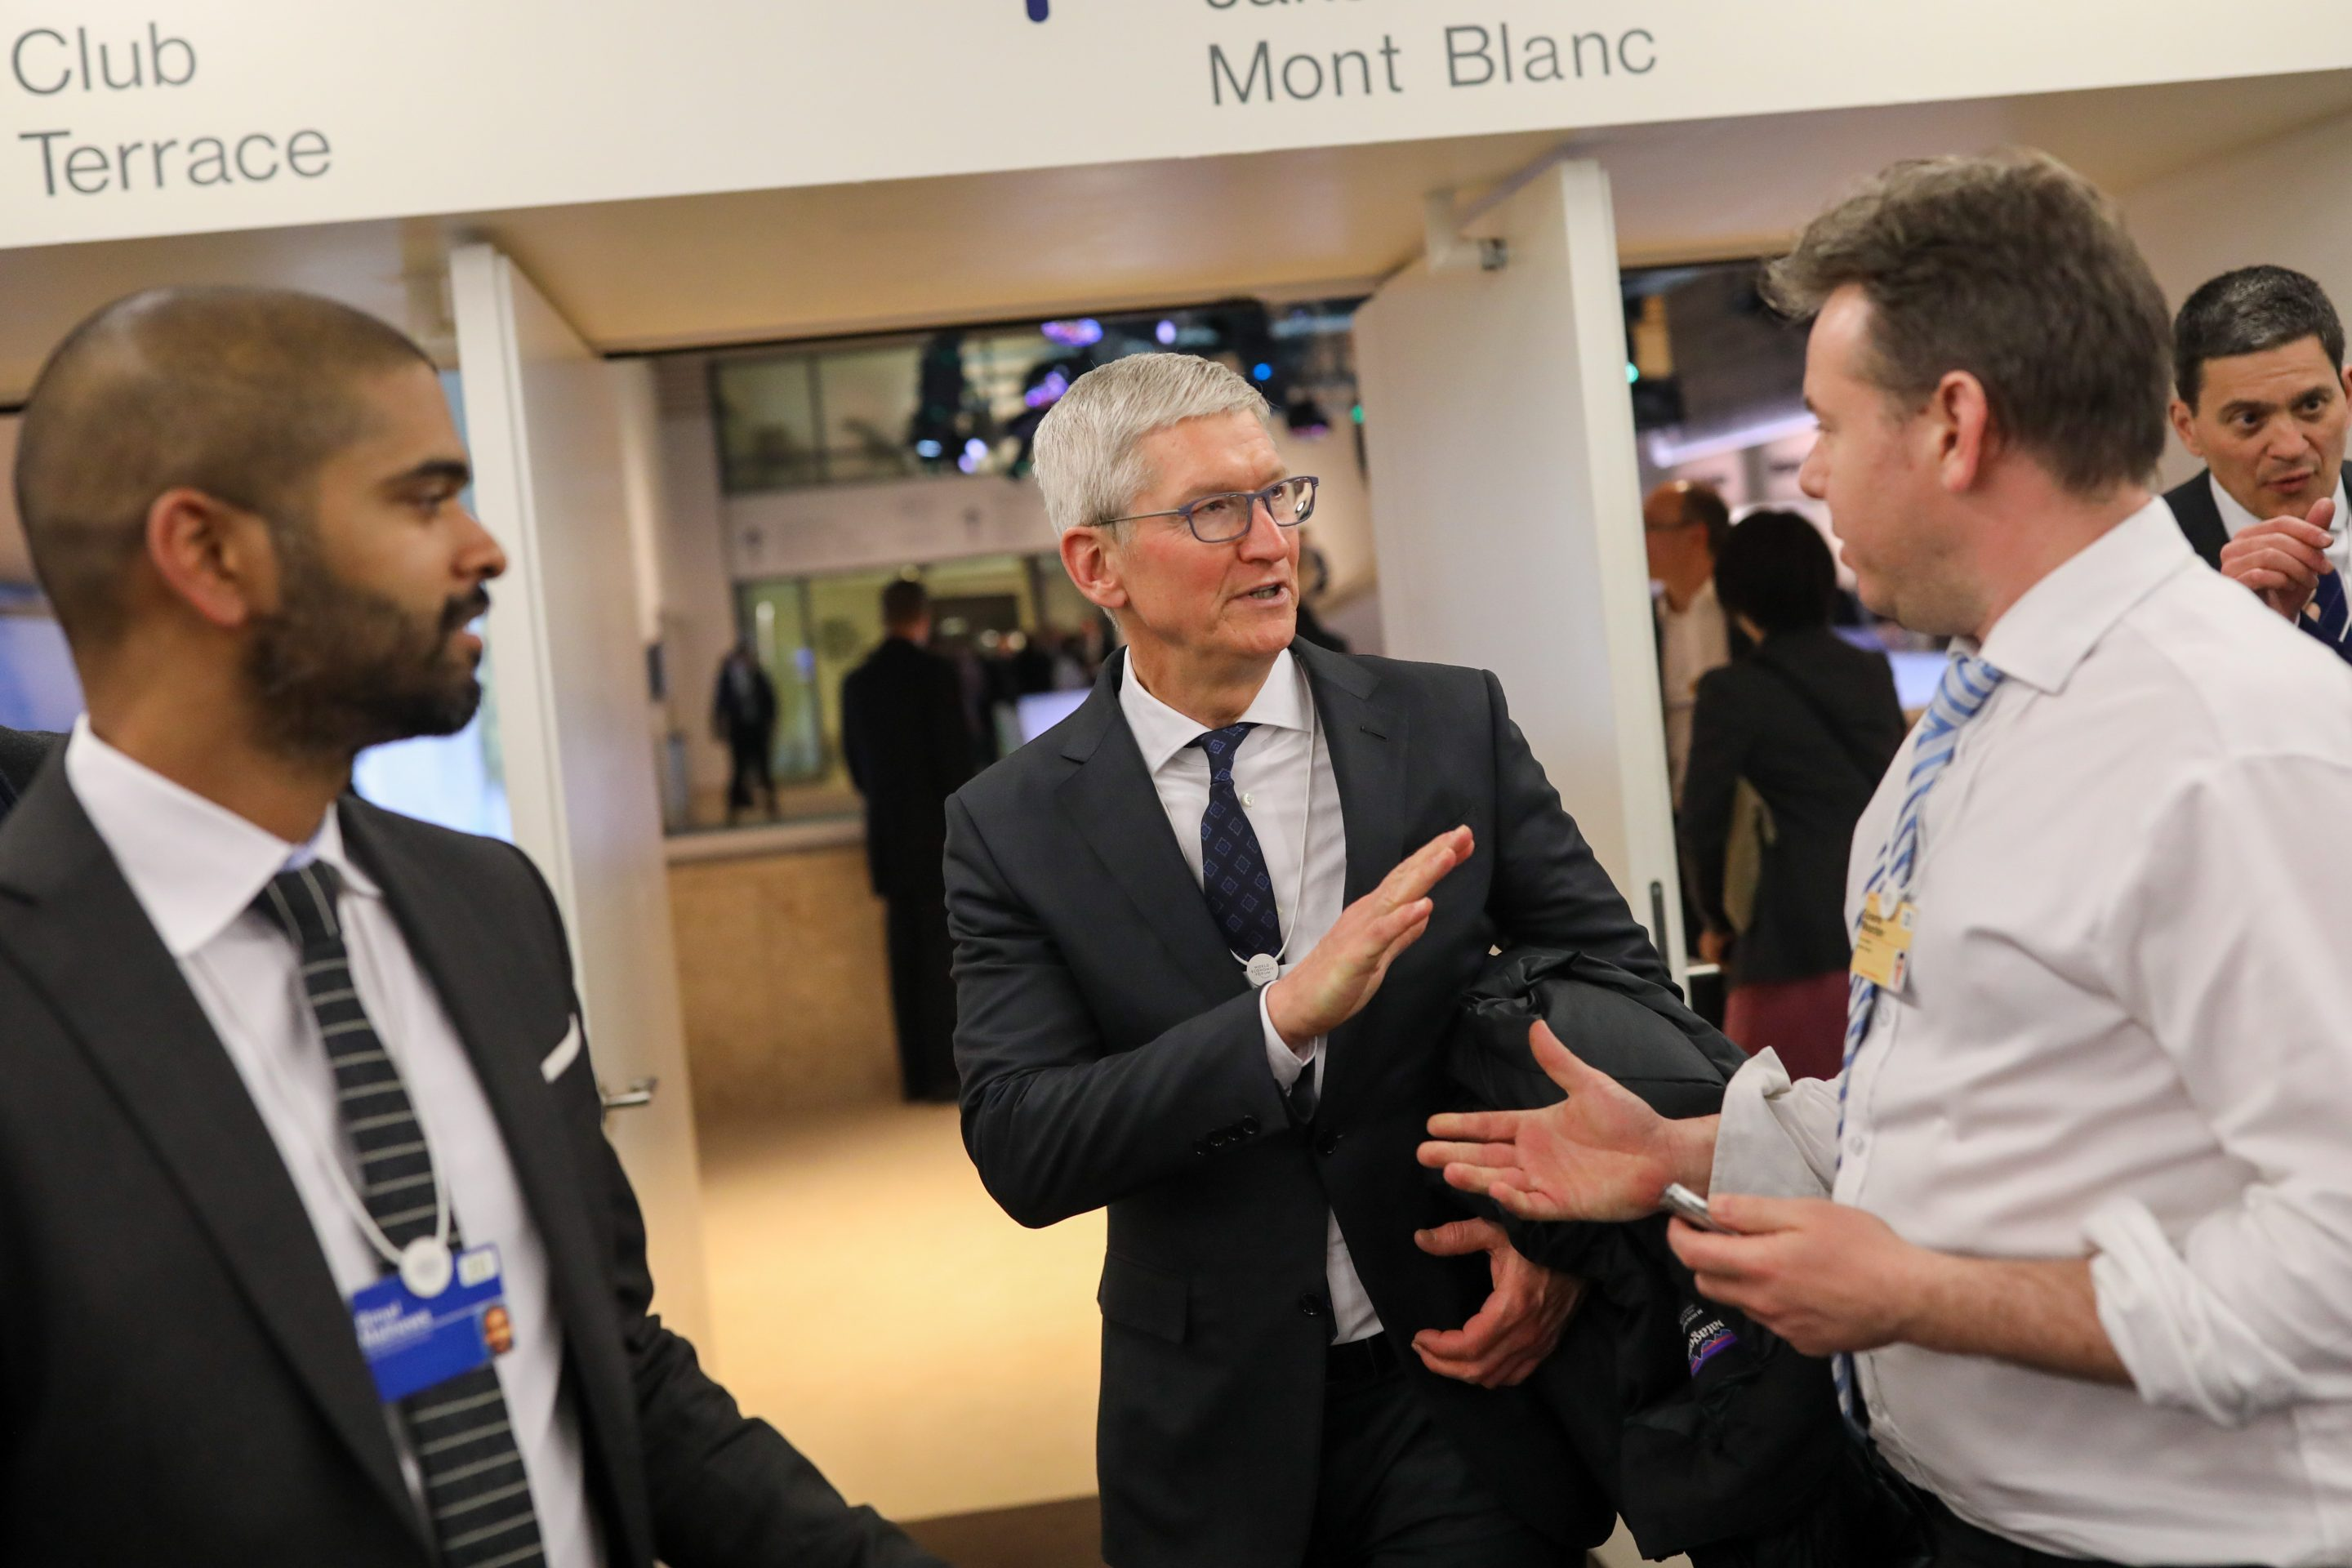 It's okay for Tim Cook to go to Davos